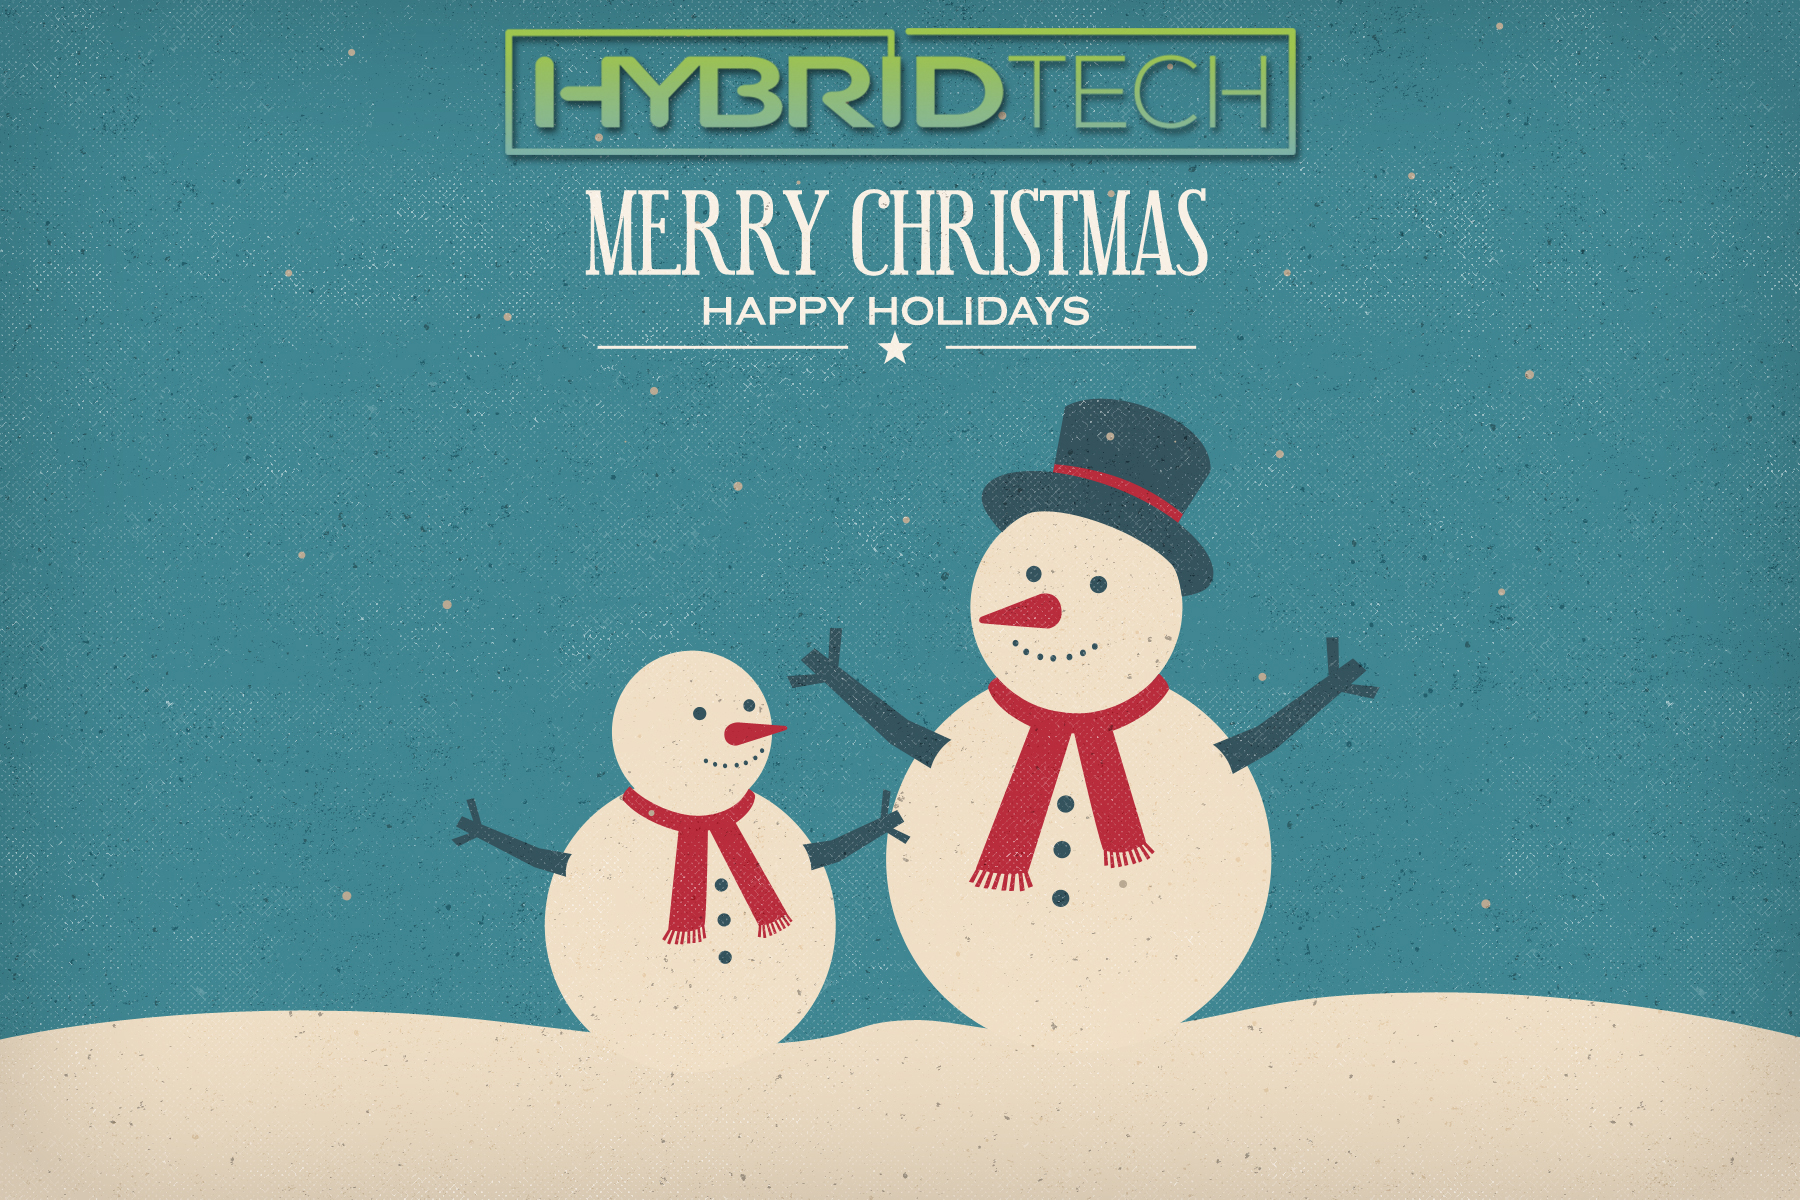 Happy Holidays from Hybrid Tech!